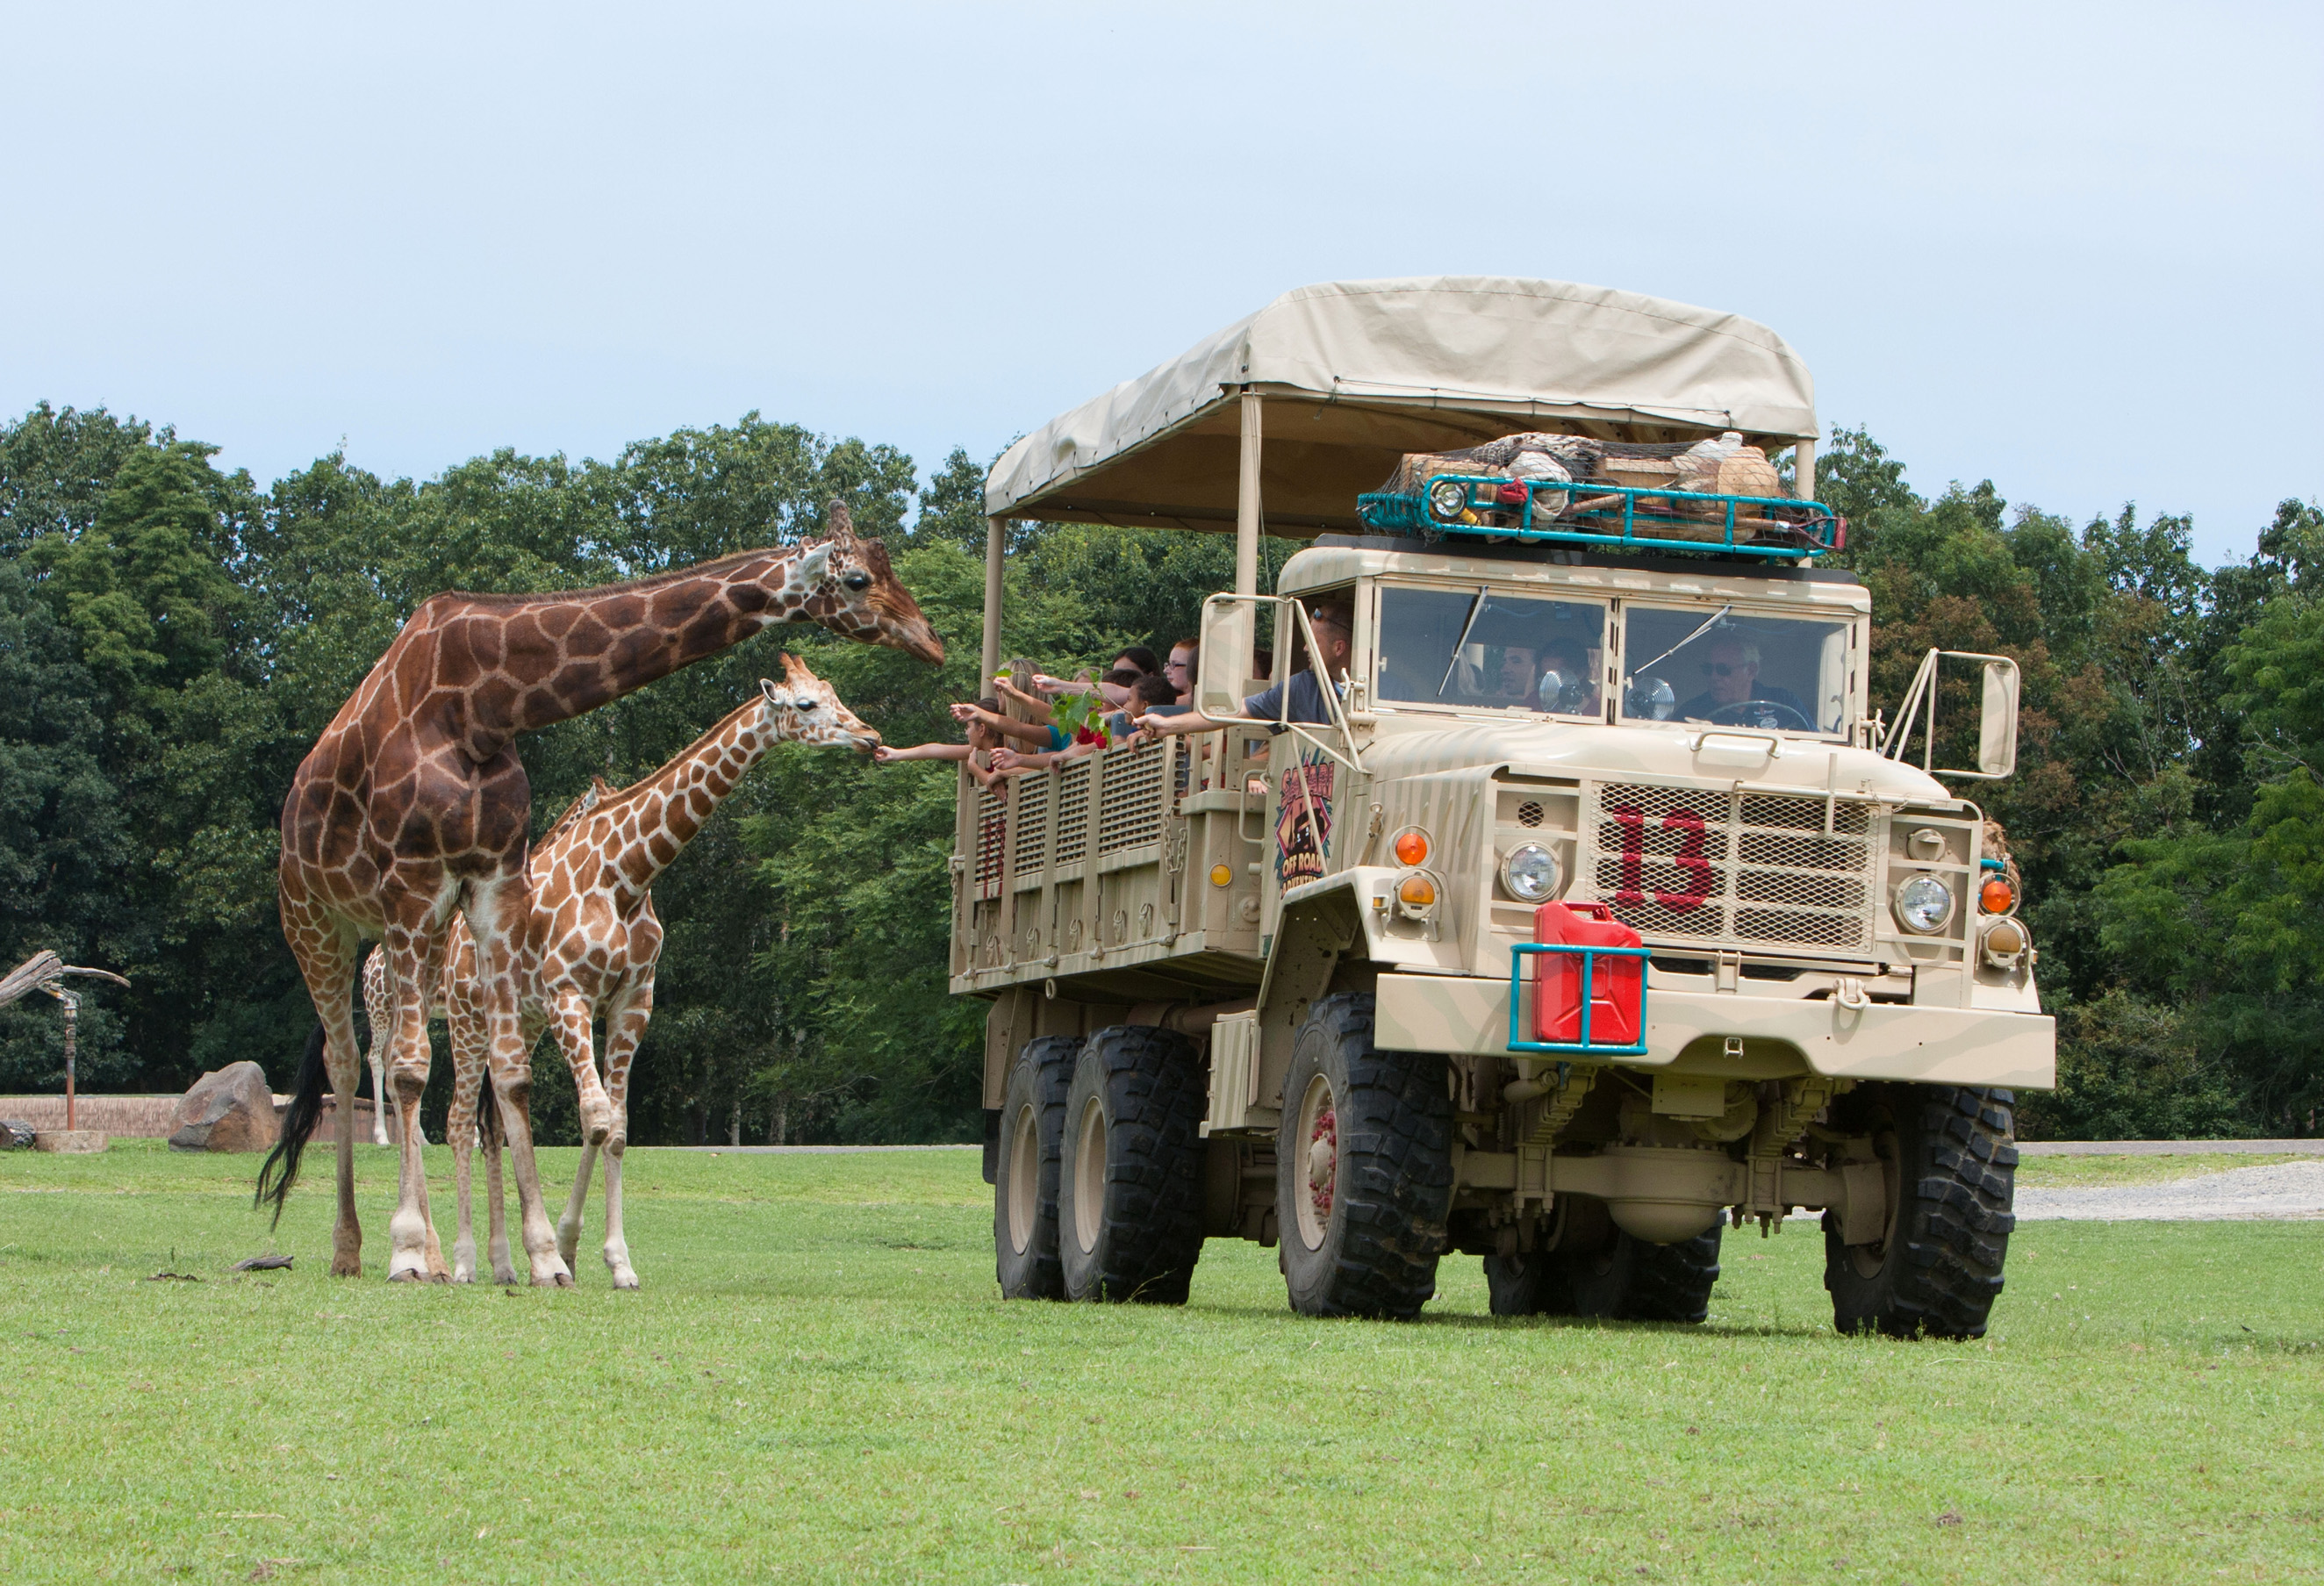 Safari Tour In New Jersey